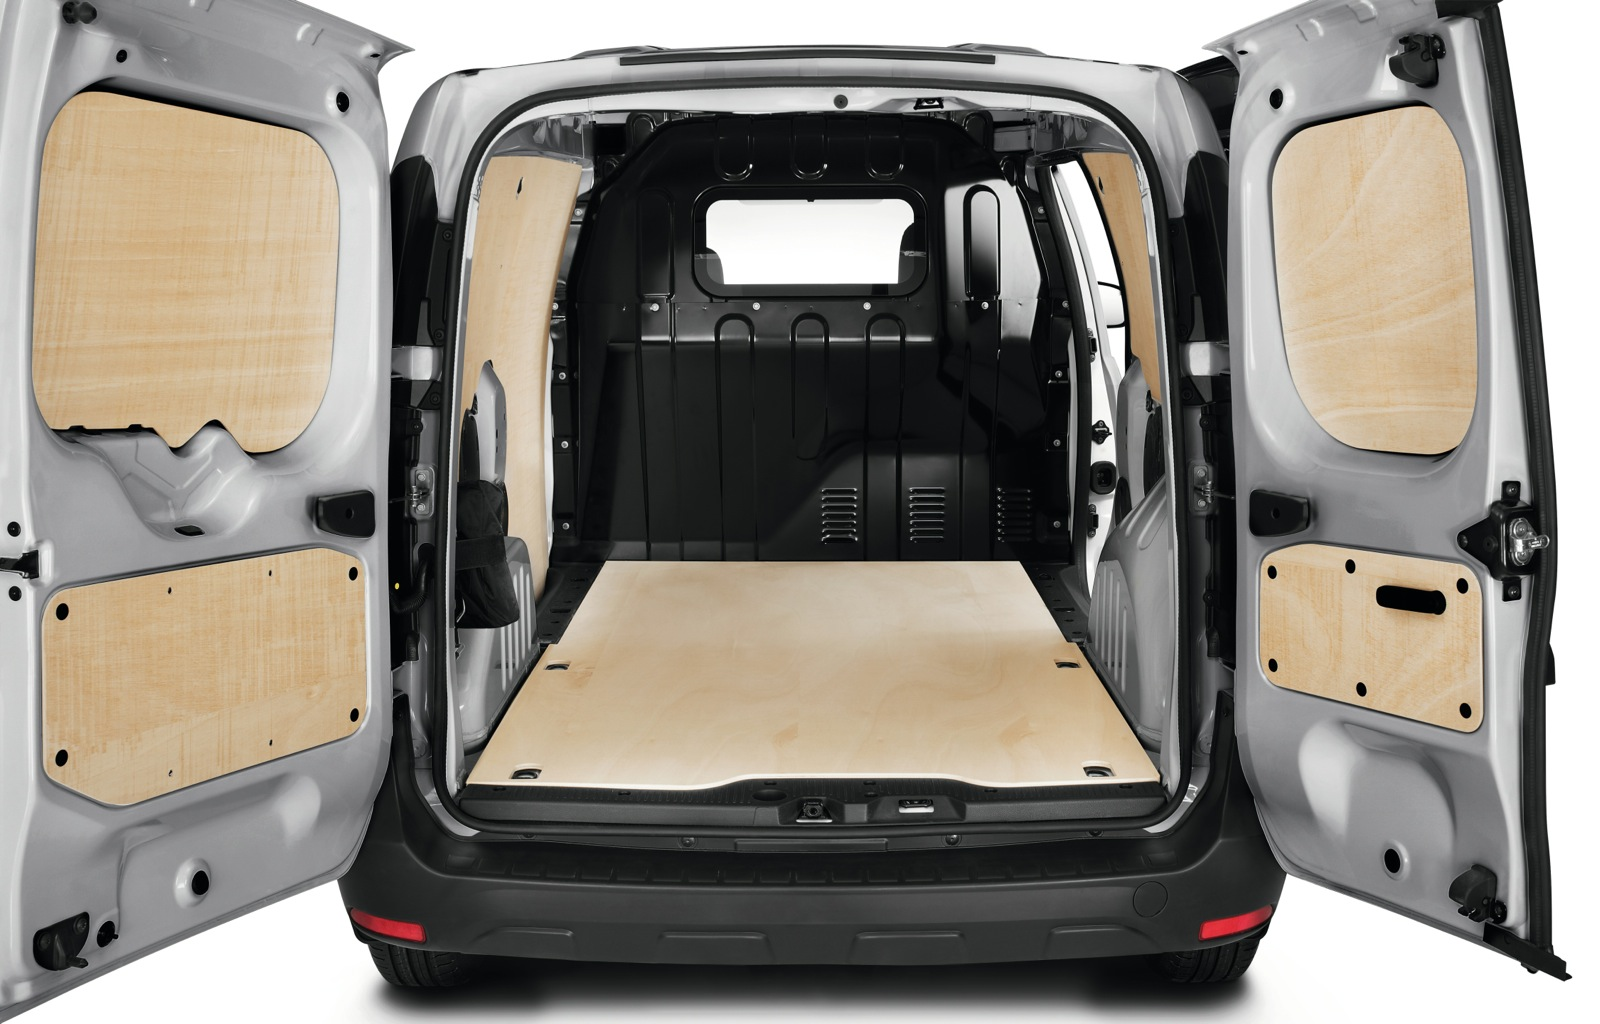 dacia dokker van specs 2012 2013 2014 2015 2016. Black Bedroom Furniture Sets. Home Design Ideas